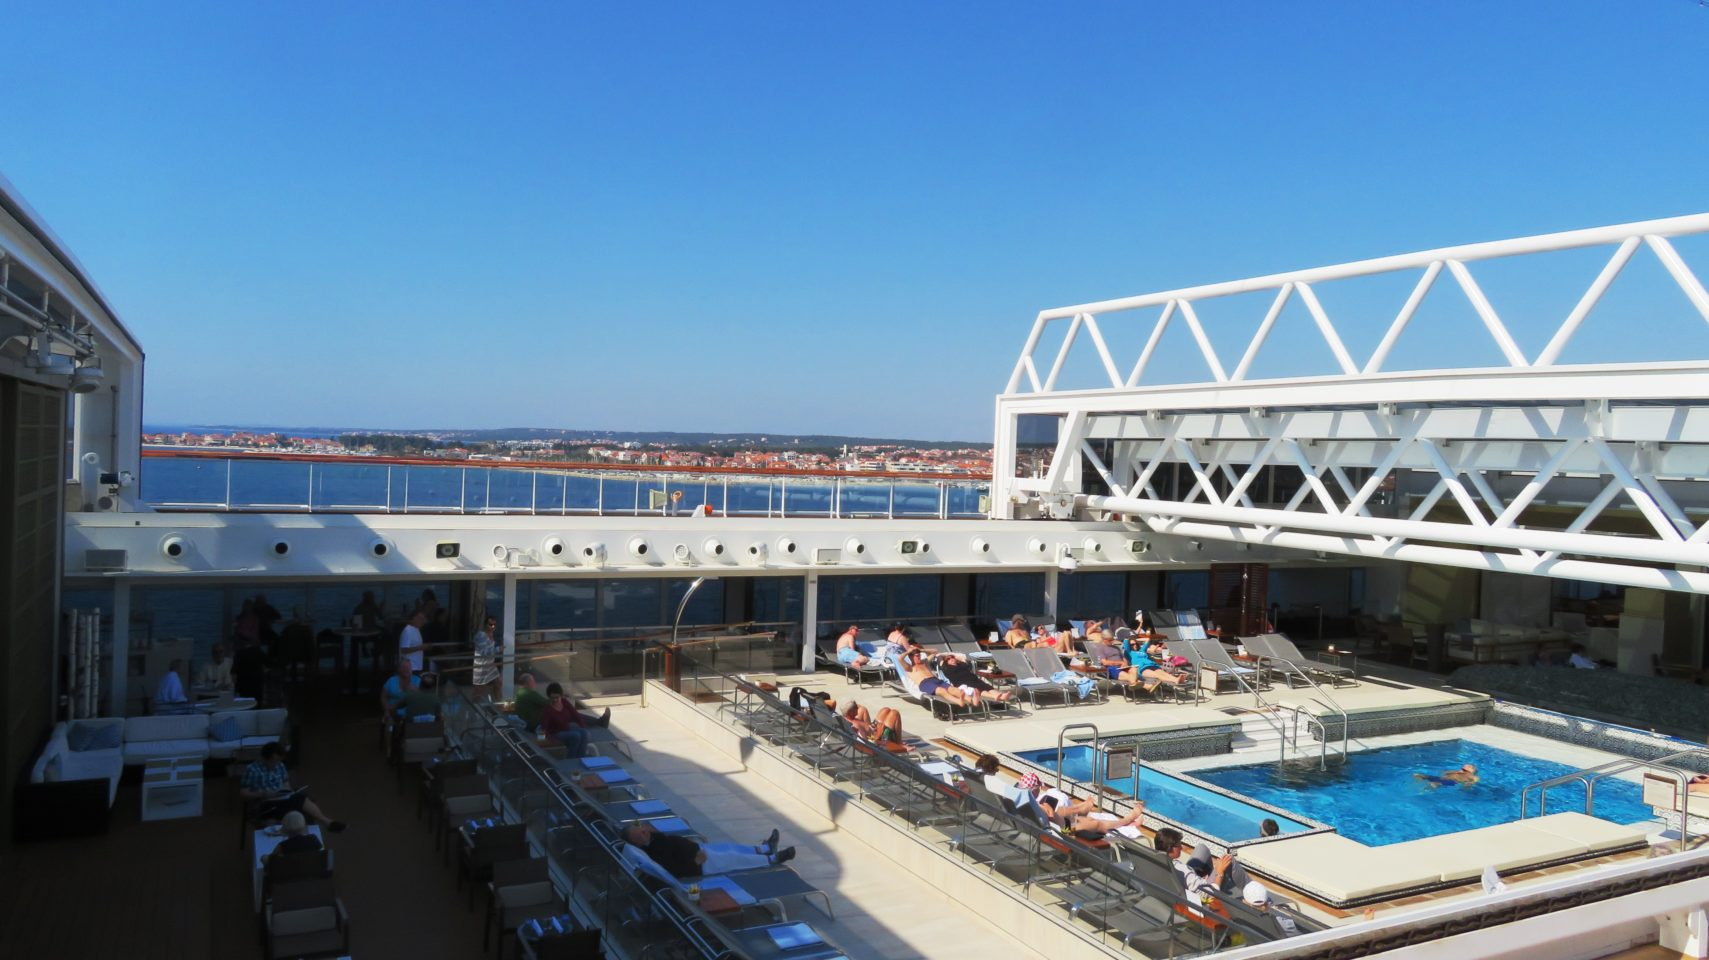 <em><strong>Viking Ocean Cruise Ships ~</strong> </em> Main Pool area on the Viking Star